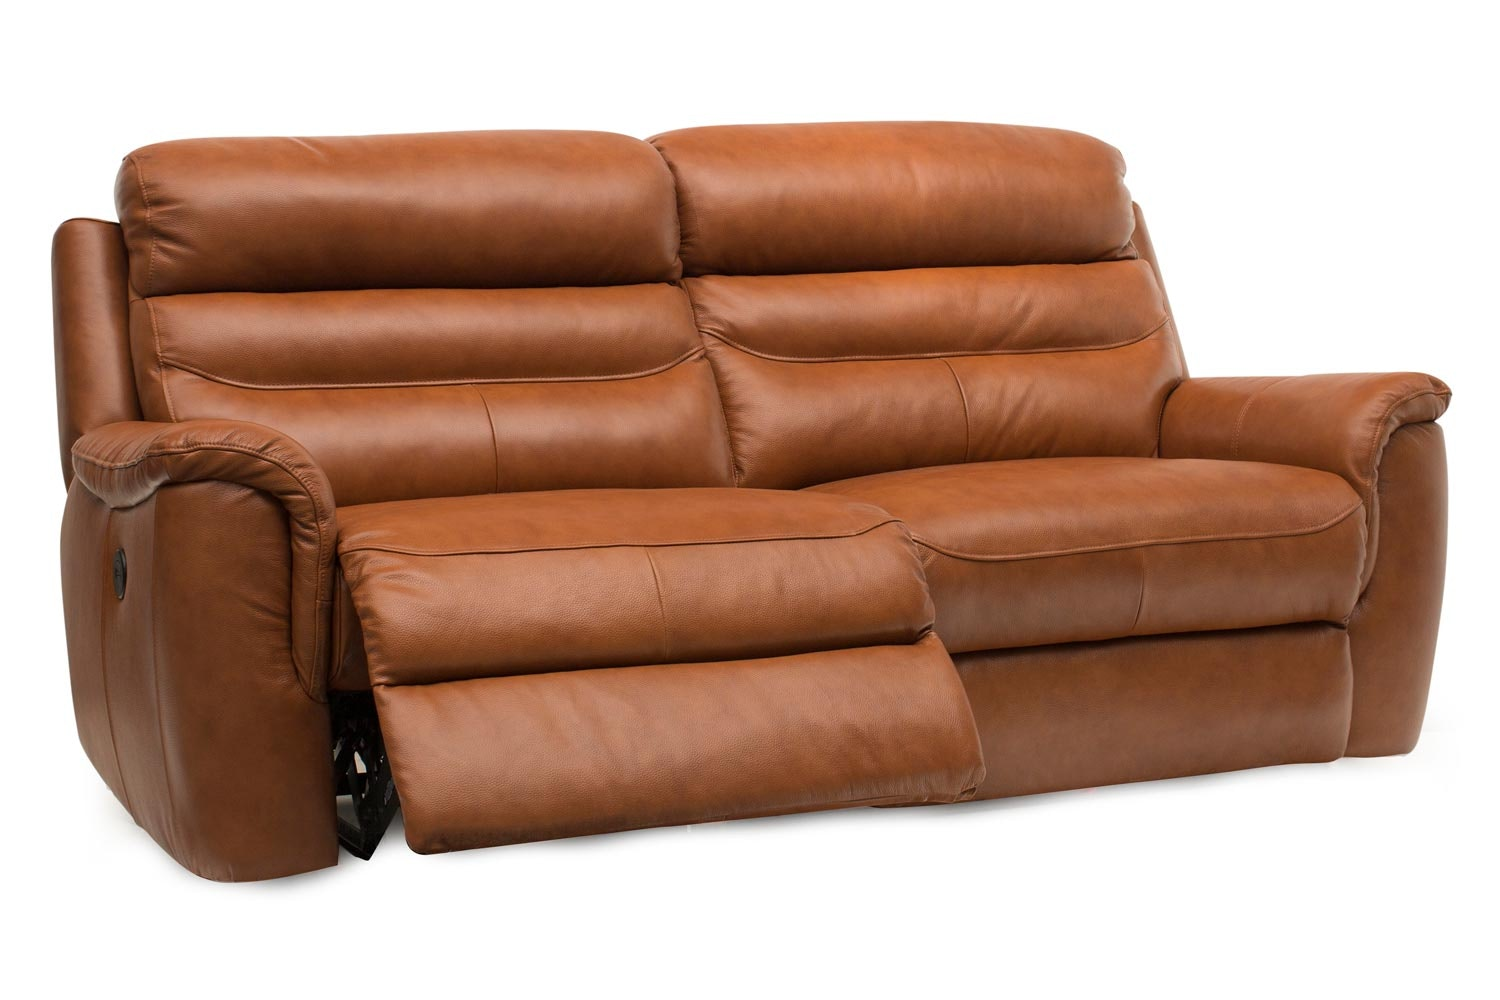 Bayle 3 Seater Leather Electric Recliner Sofa